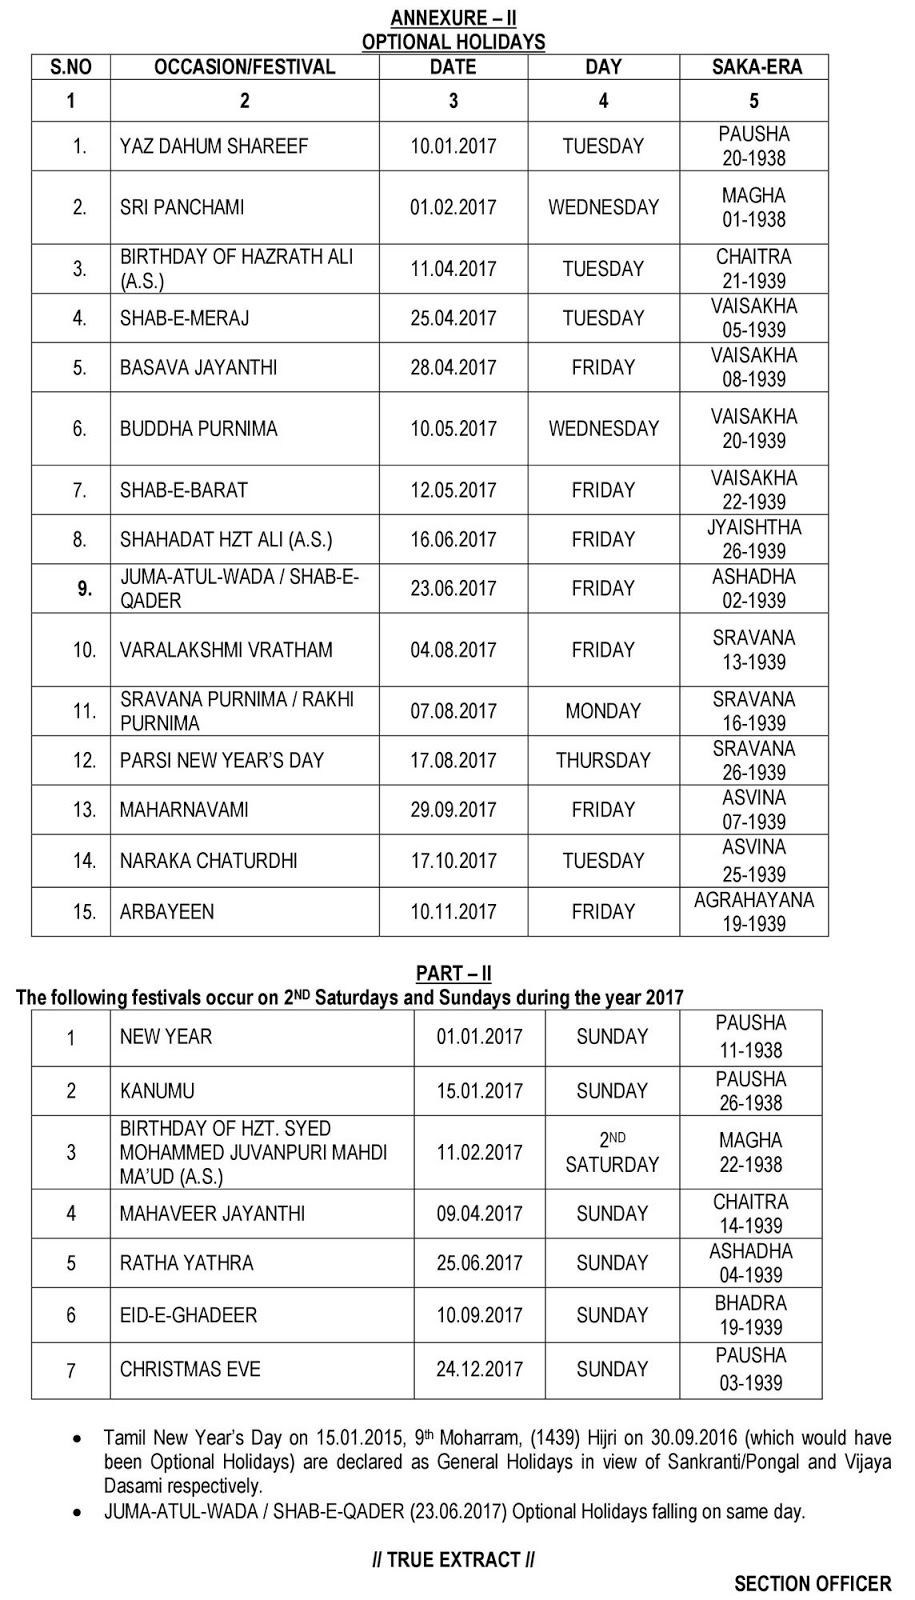 Telangana State Govt  Holidays List 2017 Telangana Govt General Public Optional Holidays